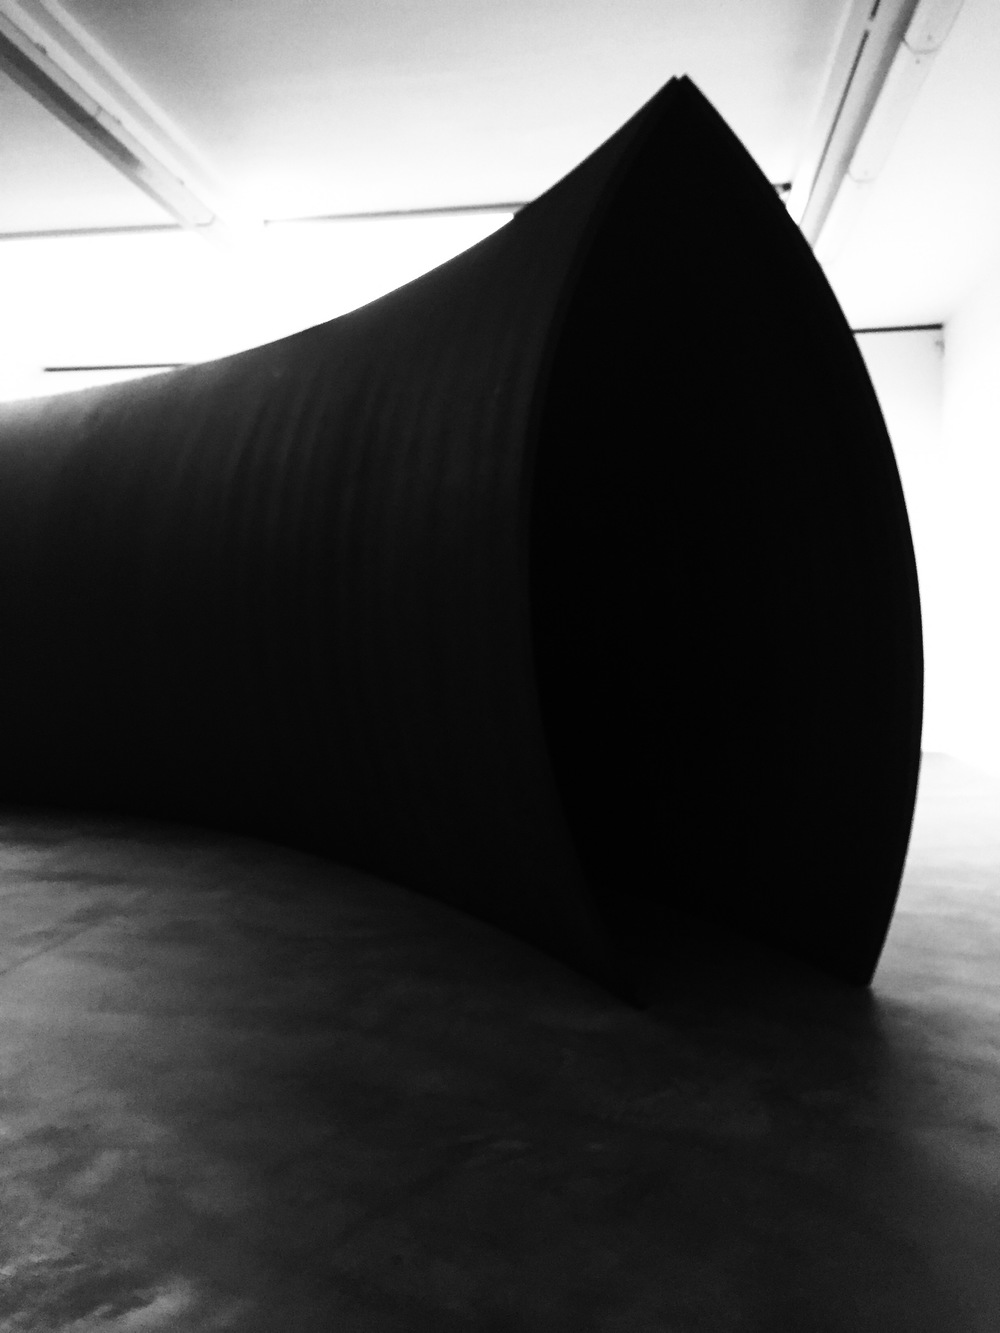 richard serra backdoor pipeline photography by paul joyce | S/TUDIO